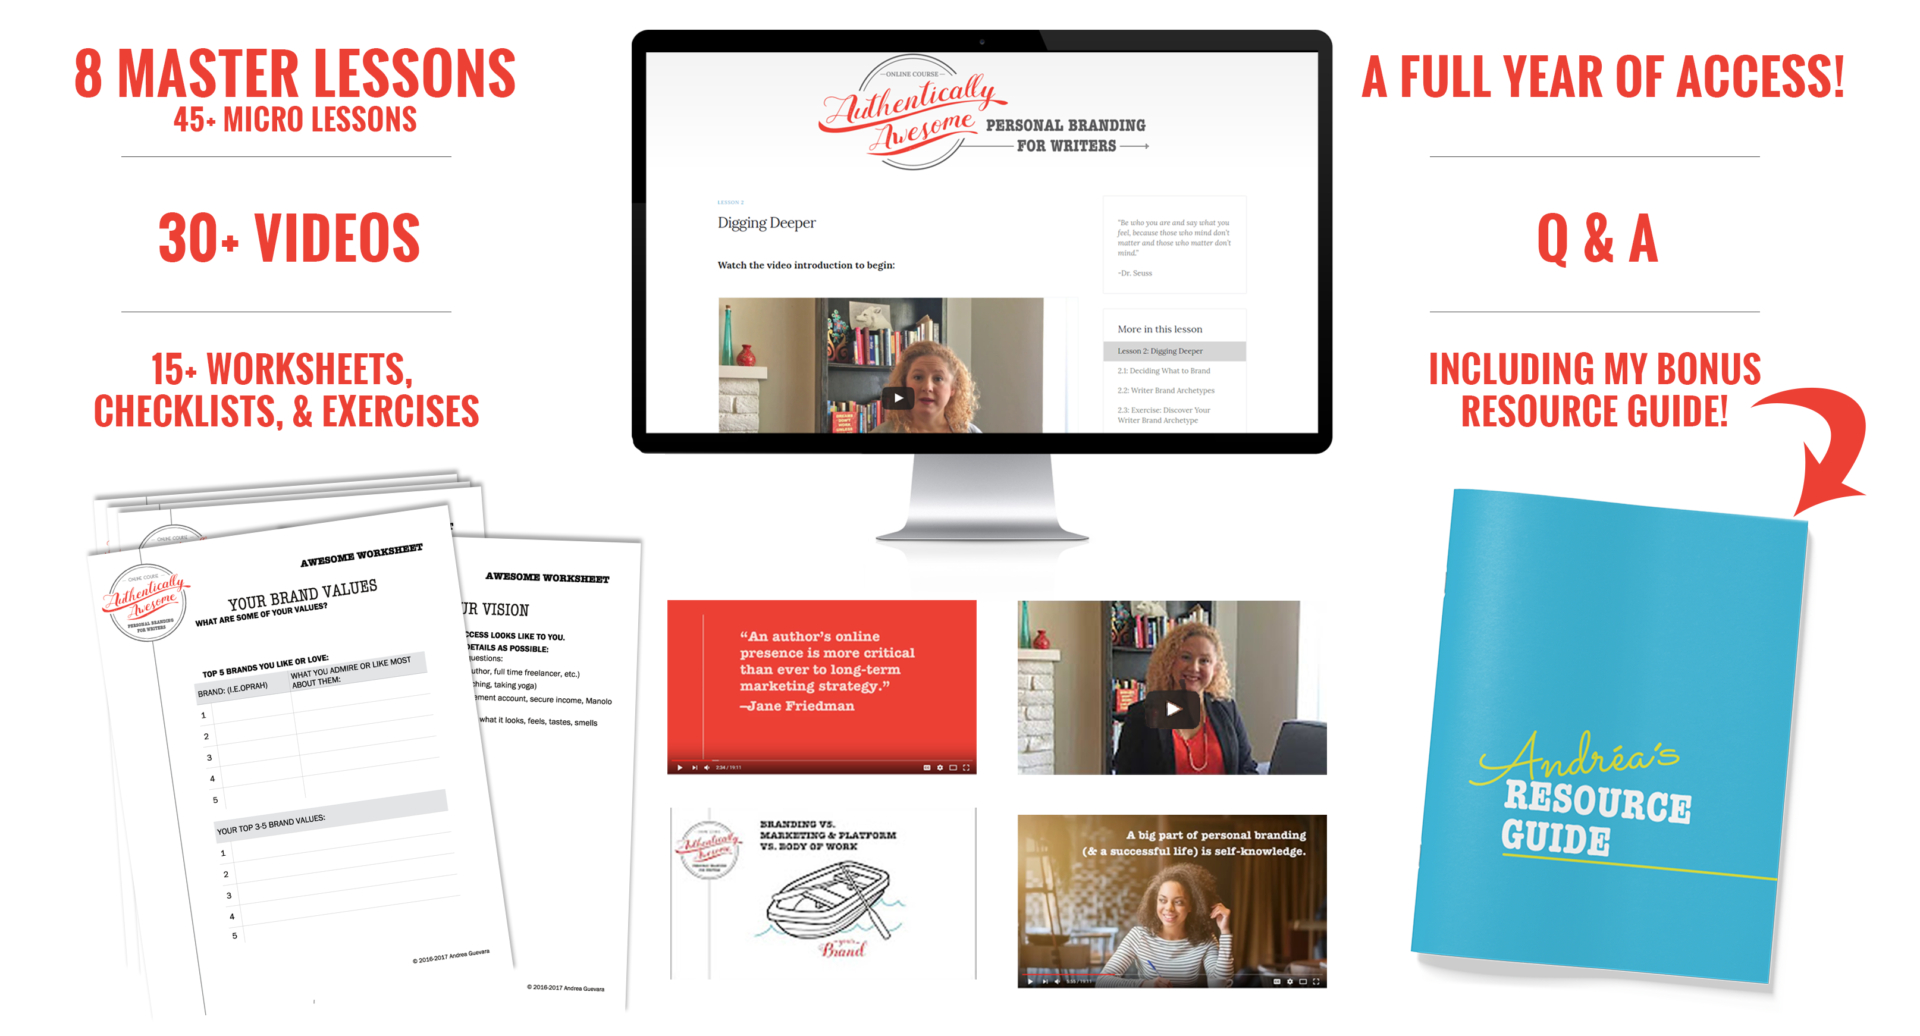 Personal Branding Worksheet